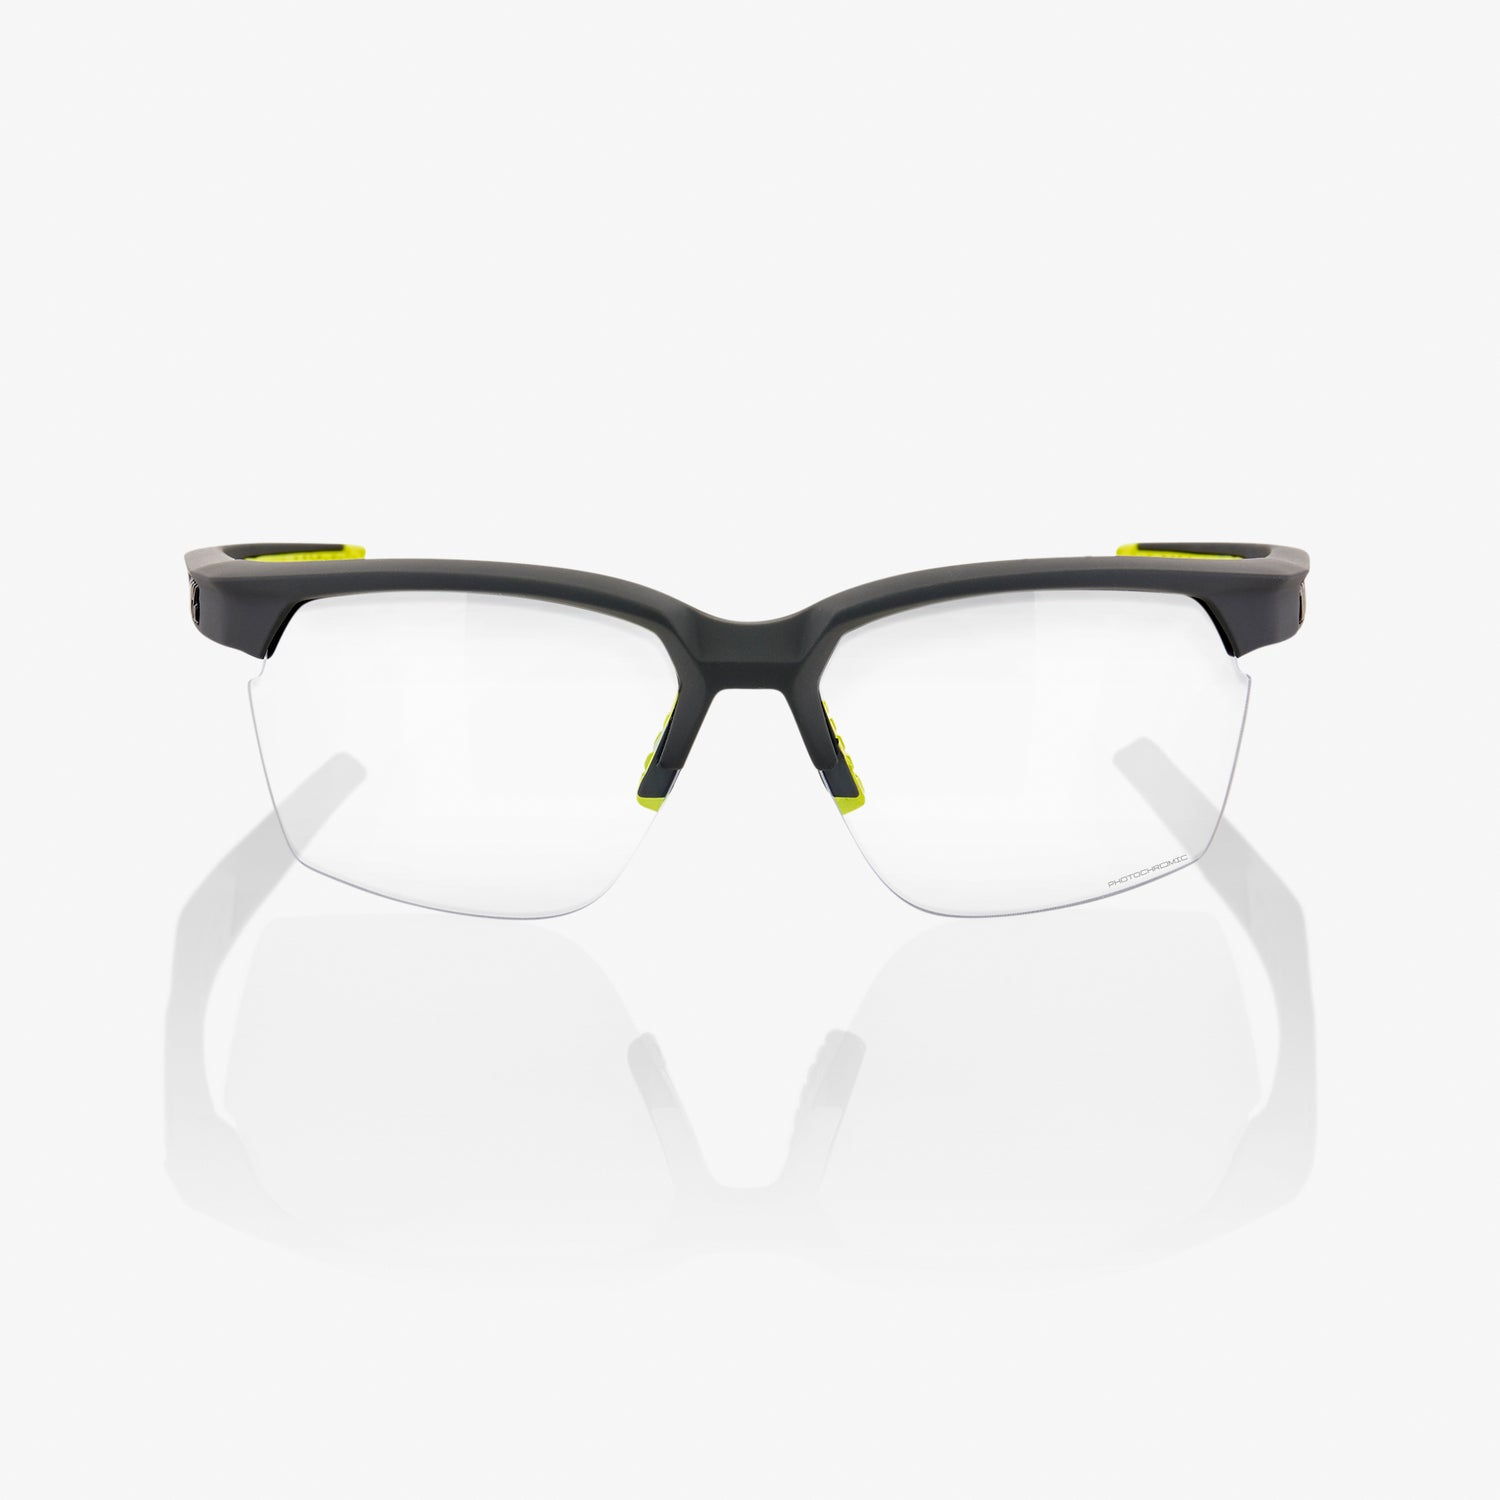 SPORTCOUPE - Soft Tact Cool Grey - Photochromic Lens